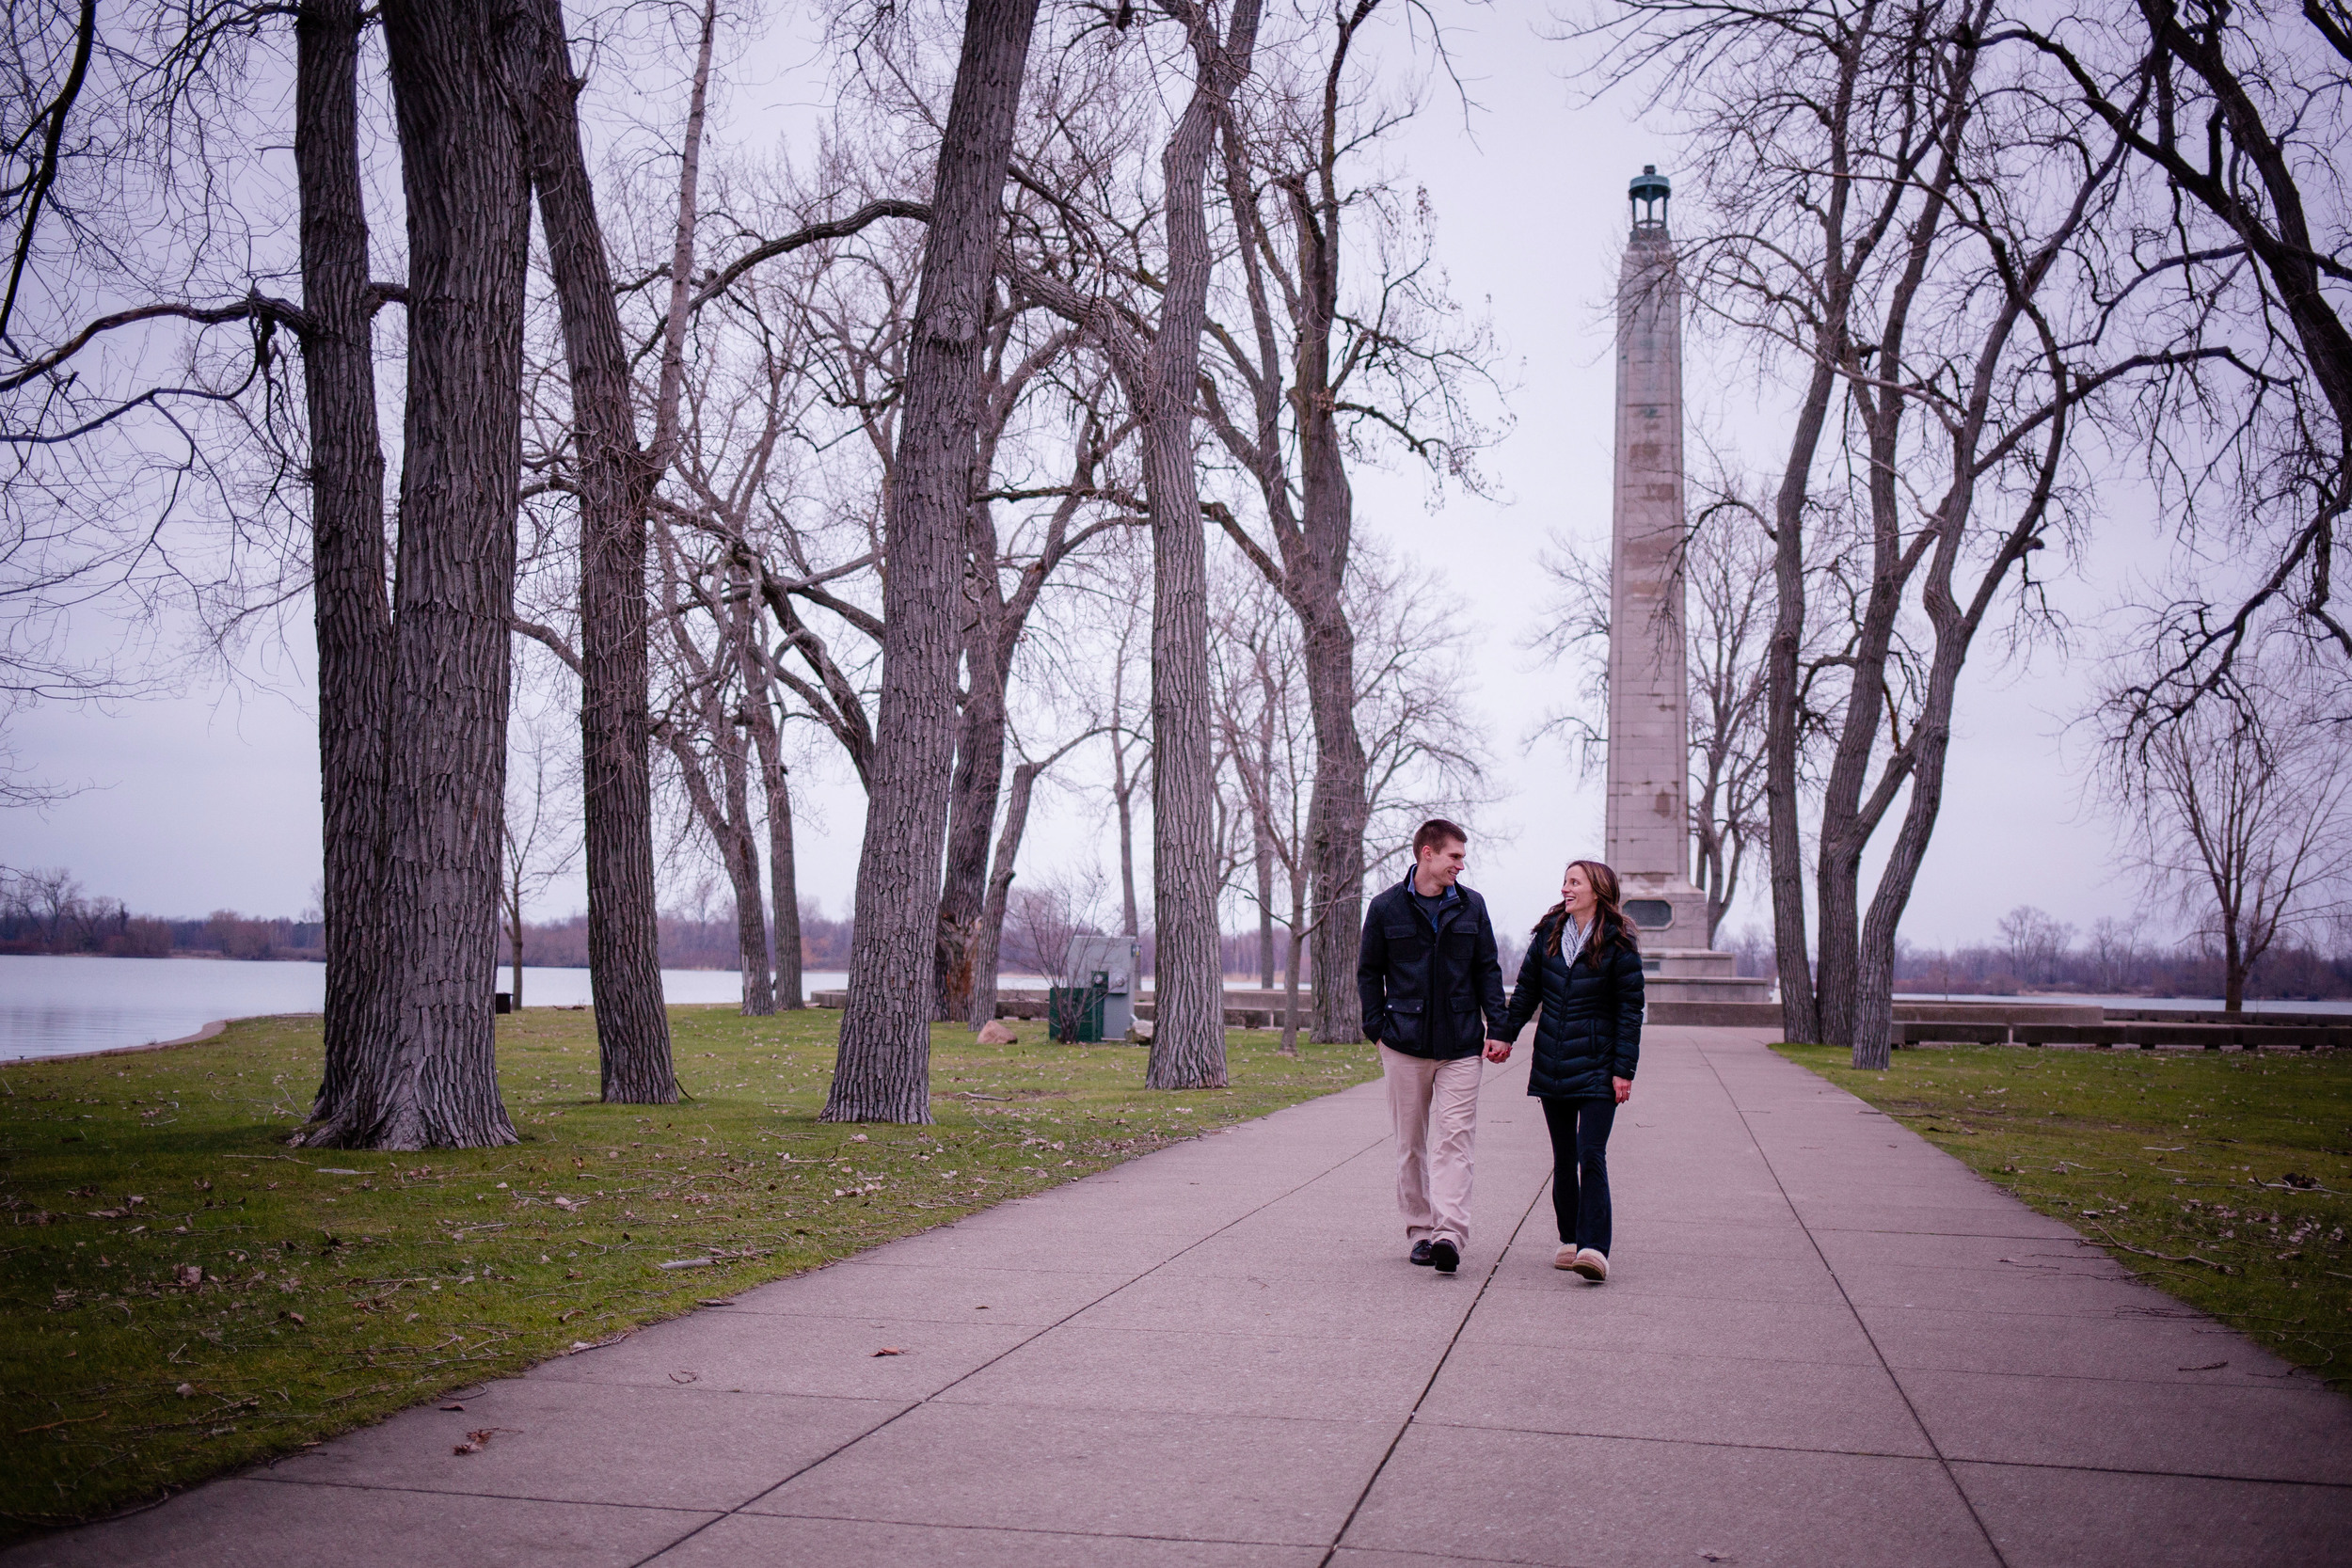 Kevin-Meredith-Proposal-Stefan-Ludwig-Photography-Buffalo-NY-Erie-PA-39-x.jpg